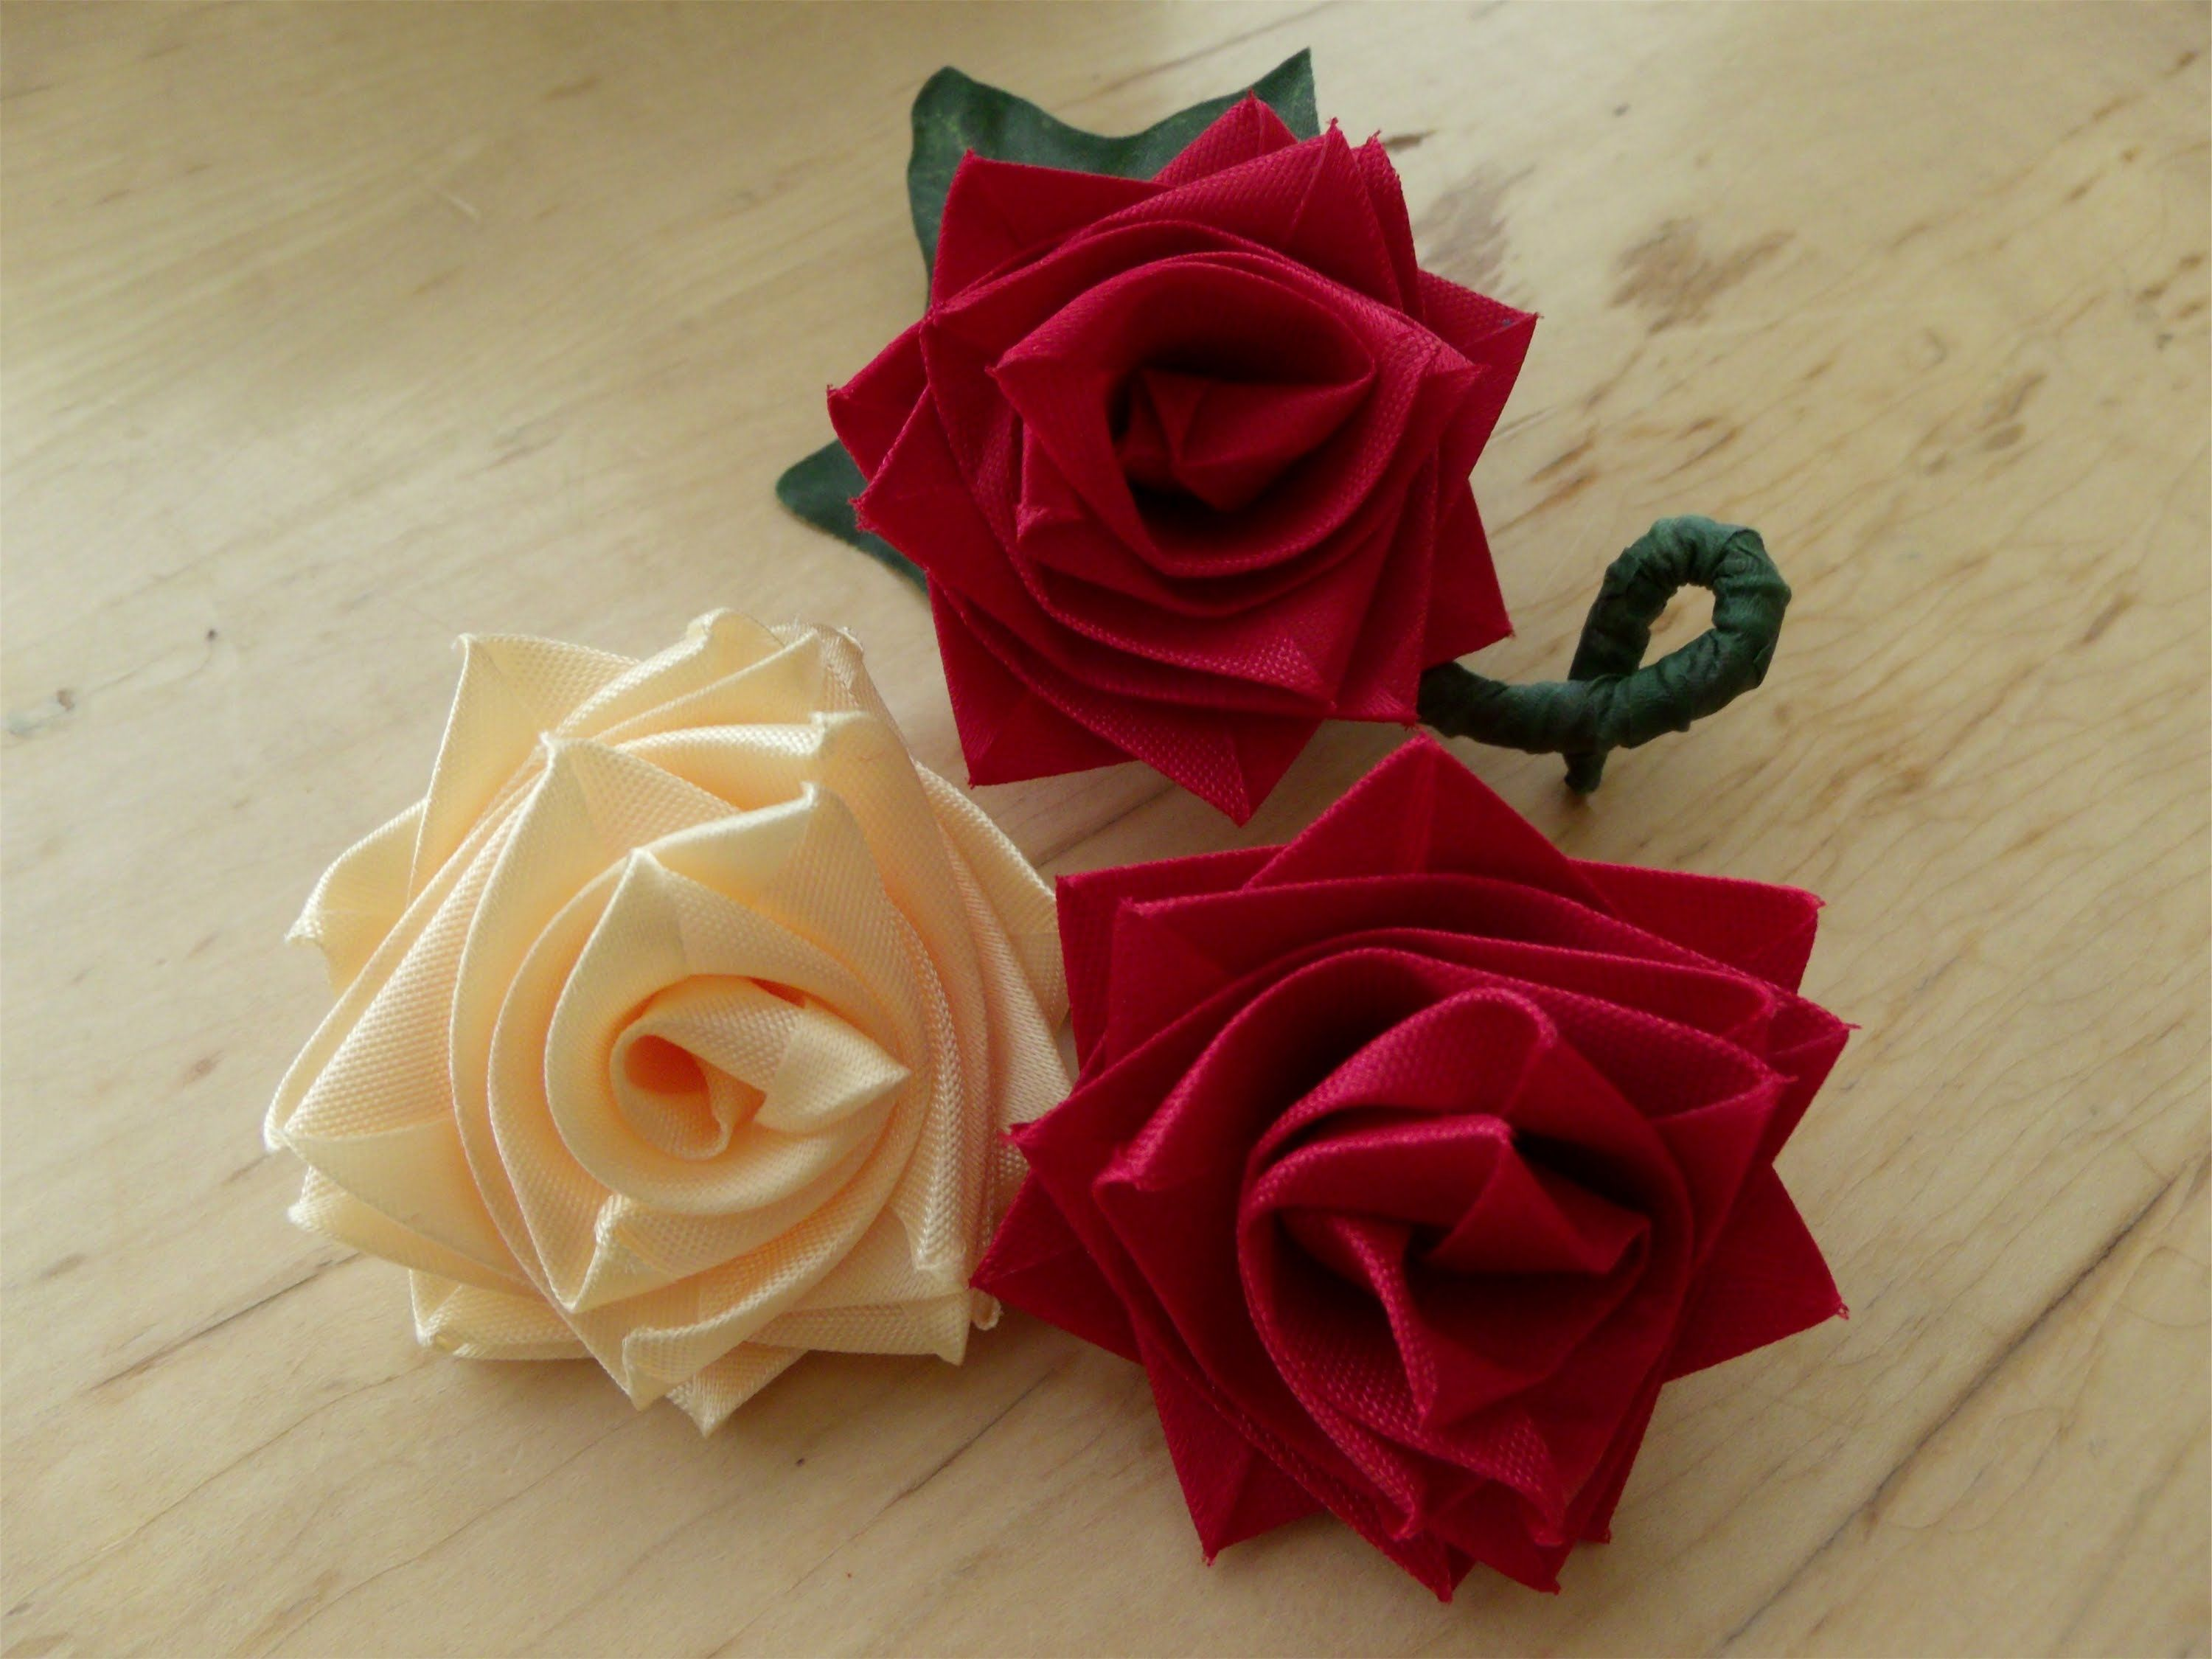 This Video Shows You How To Make A Rose Out Of Floral Ribbon It Is